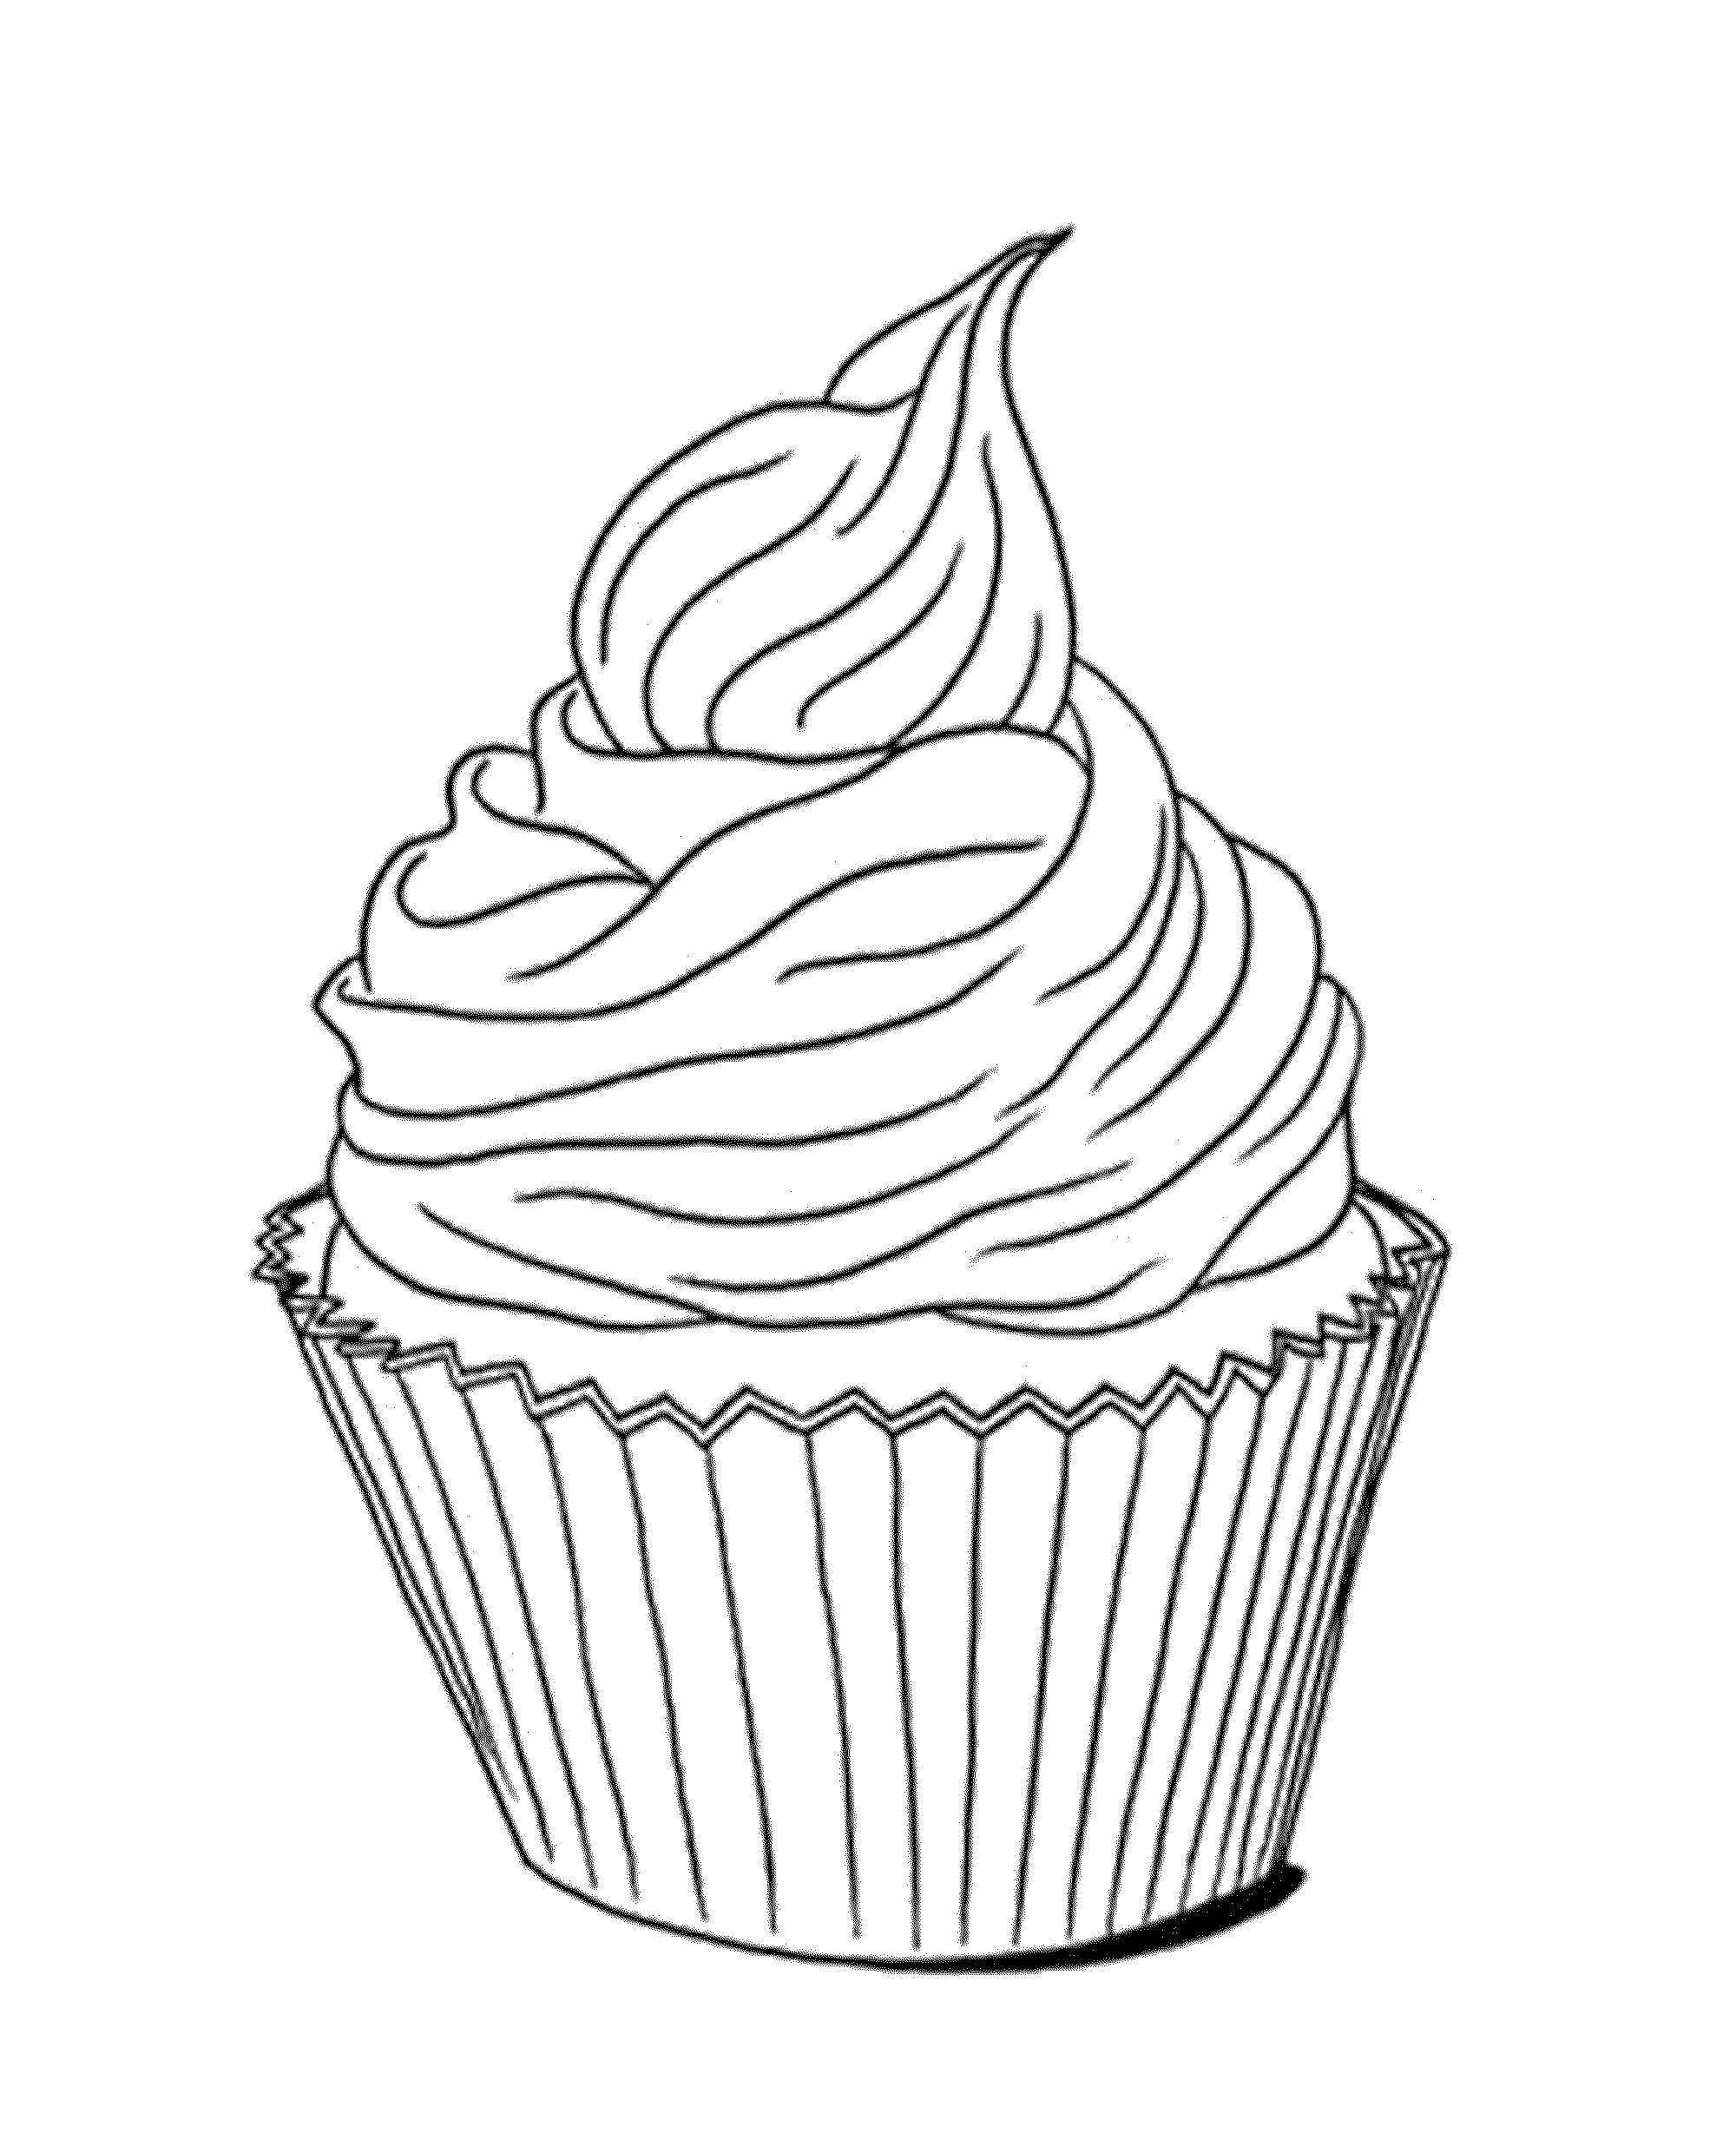 2000x2457 Cupcake Drawing Black And White At Getdrawings Com Free